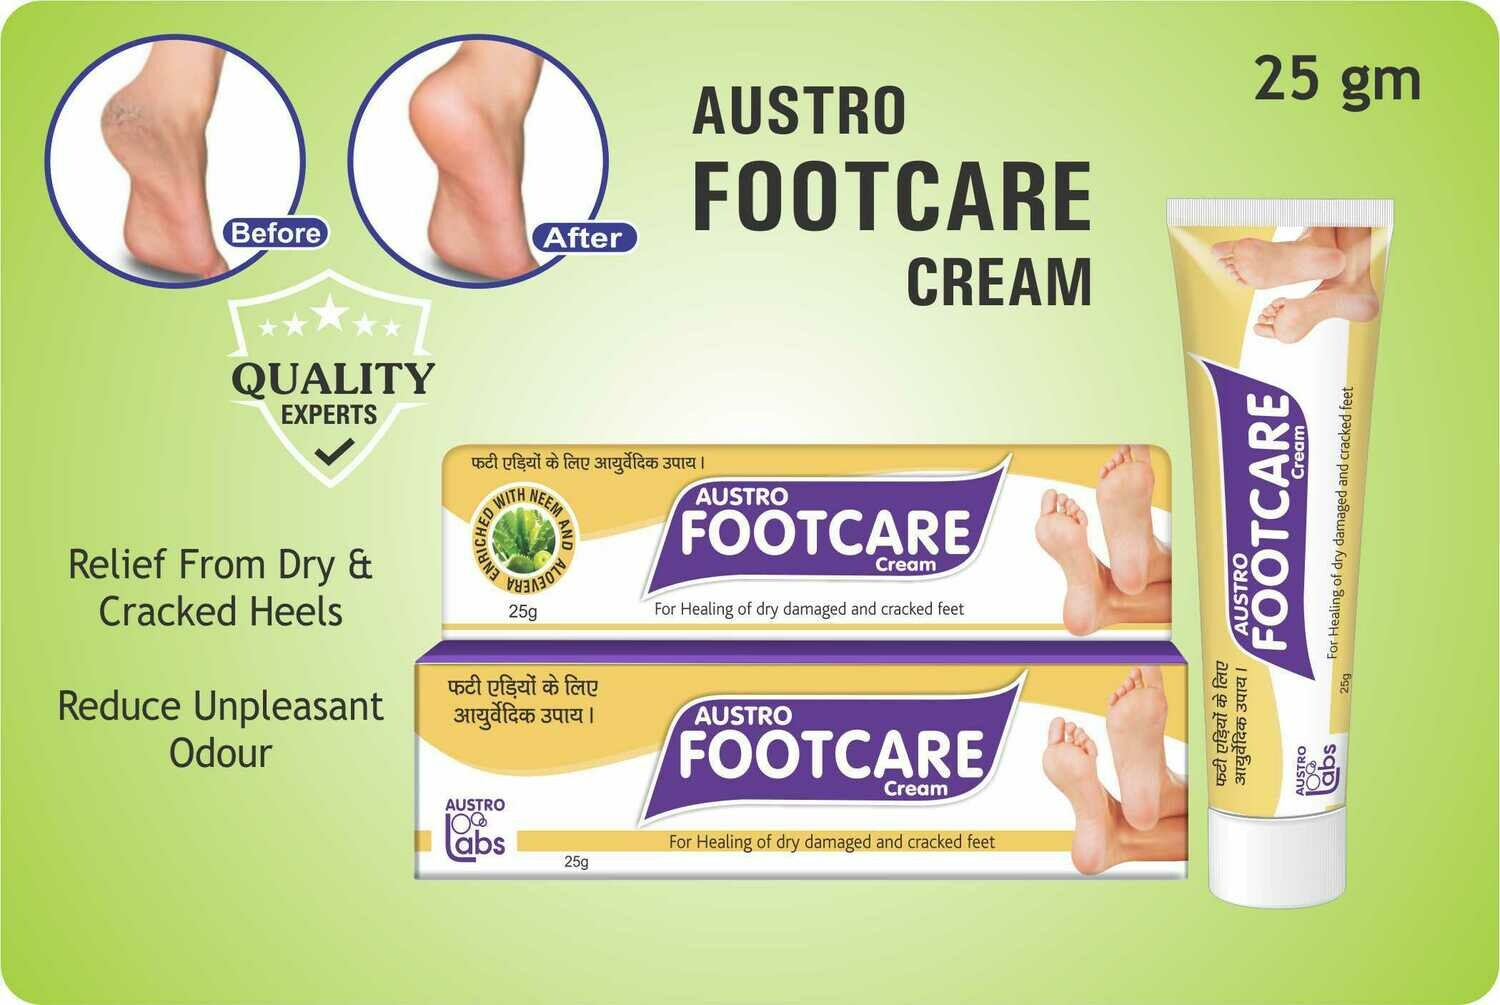 Austro Footcare Cream